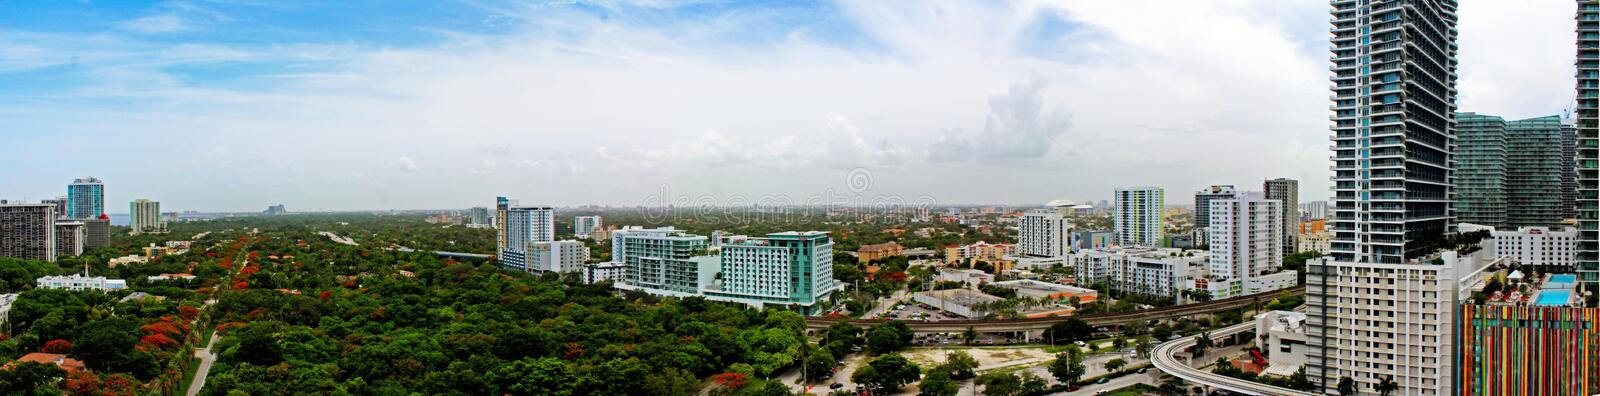 Beautiful Brickell Miami, Florida royalty free stock images